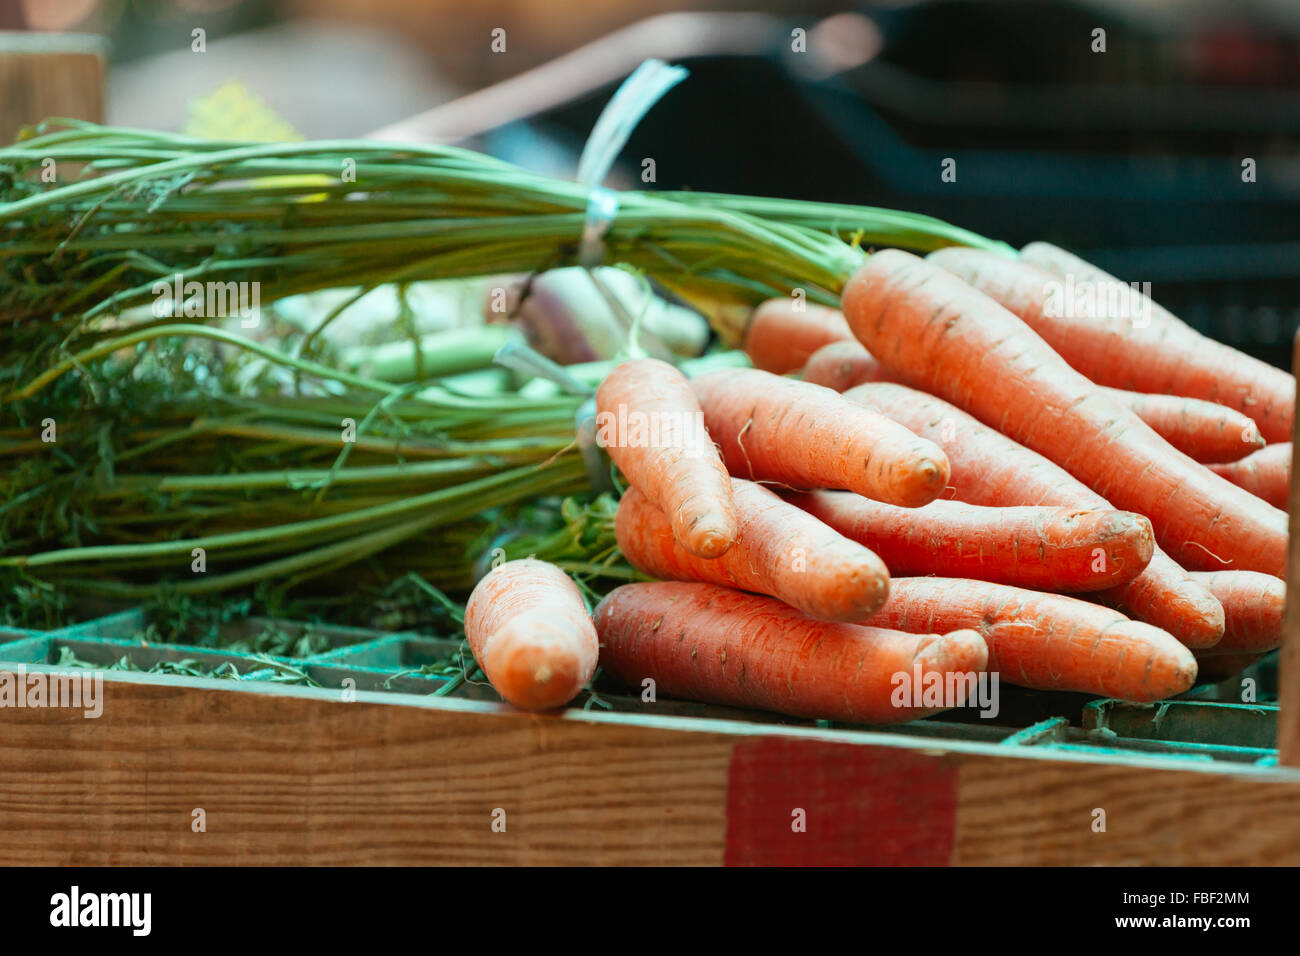 Close-Up Of Carrots On Table For Sale - Stock Image